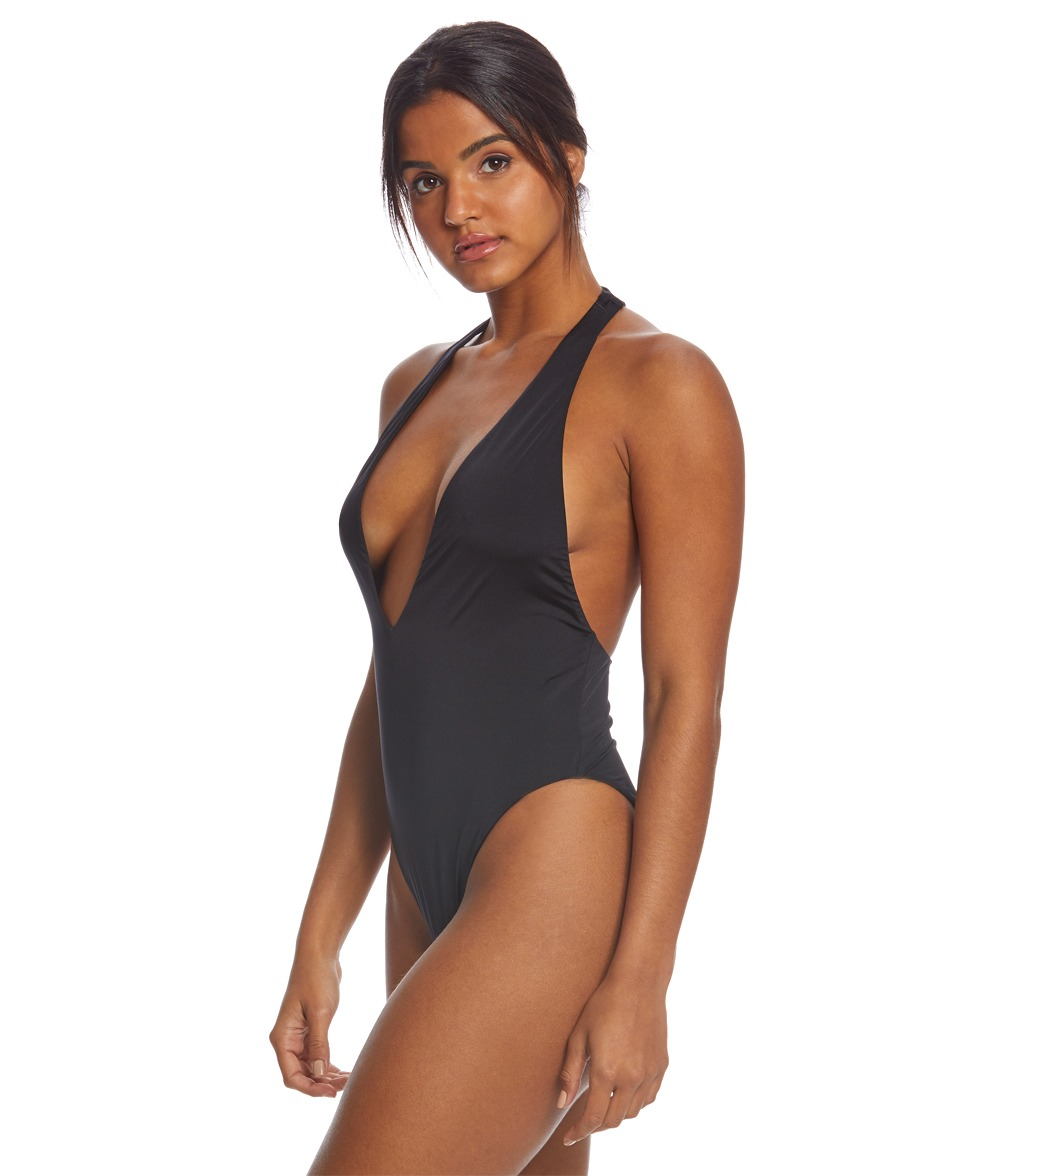 aa98c79b7f7 Bikini Lab Solid Racerback One Piece Swimsuit at SwimOutlet.com ...